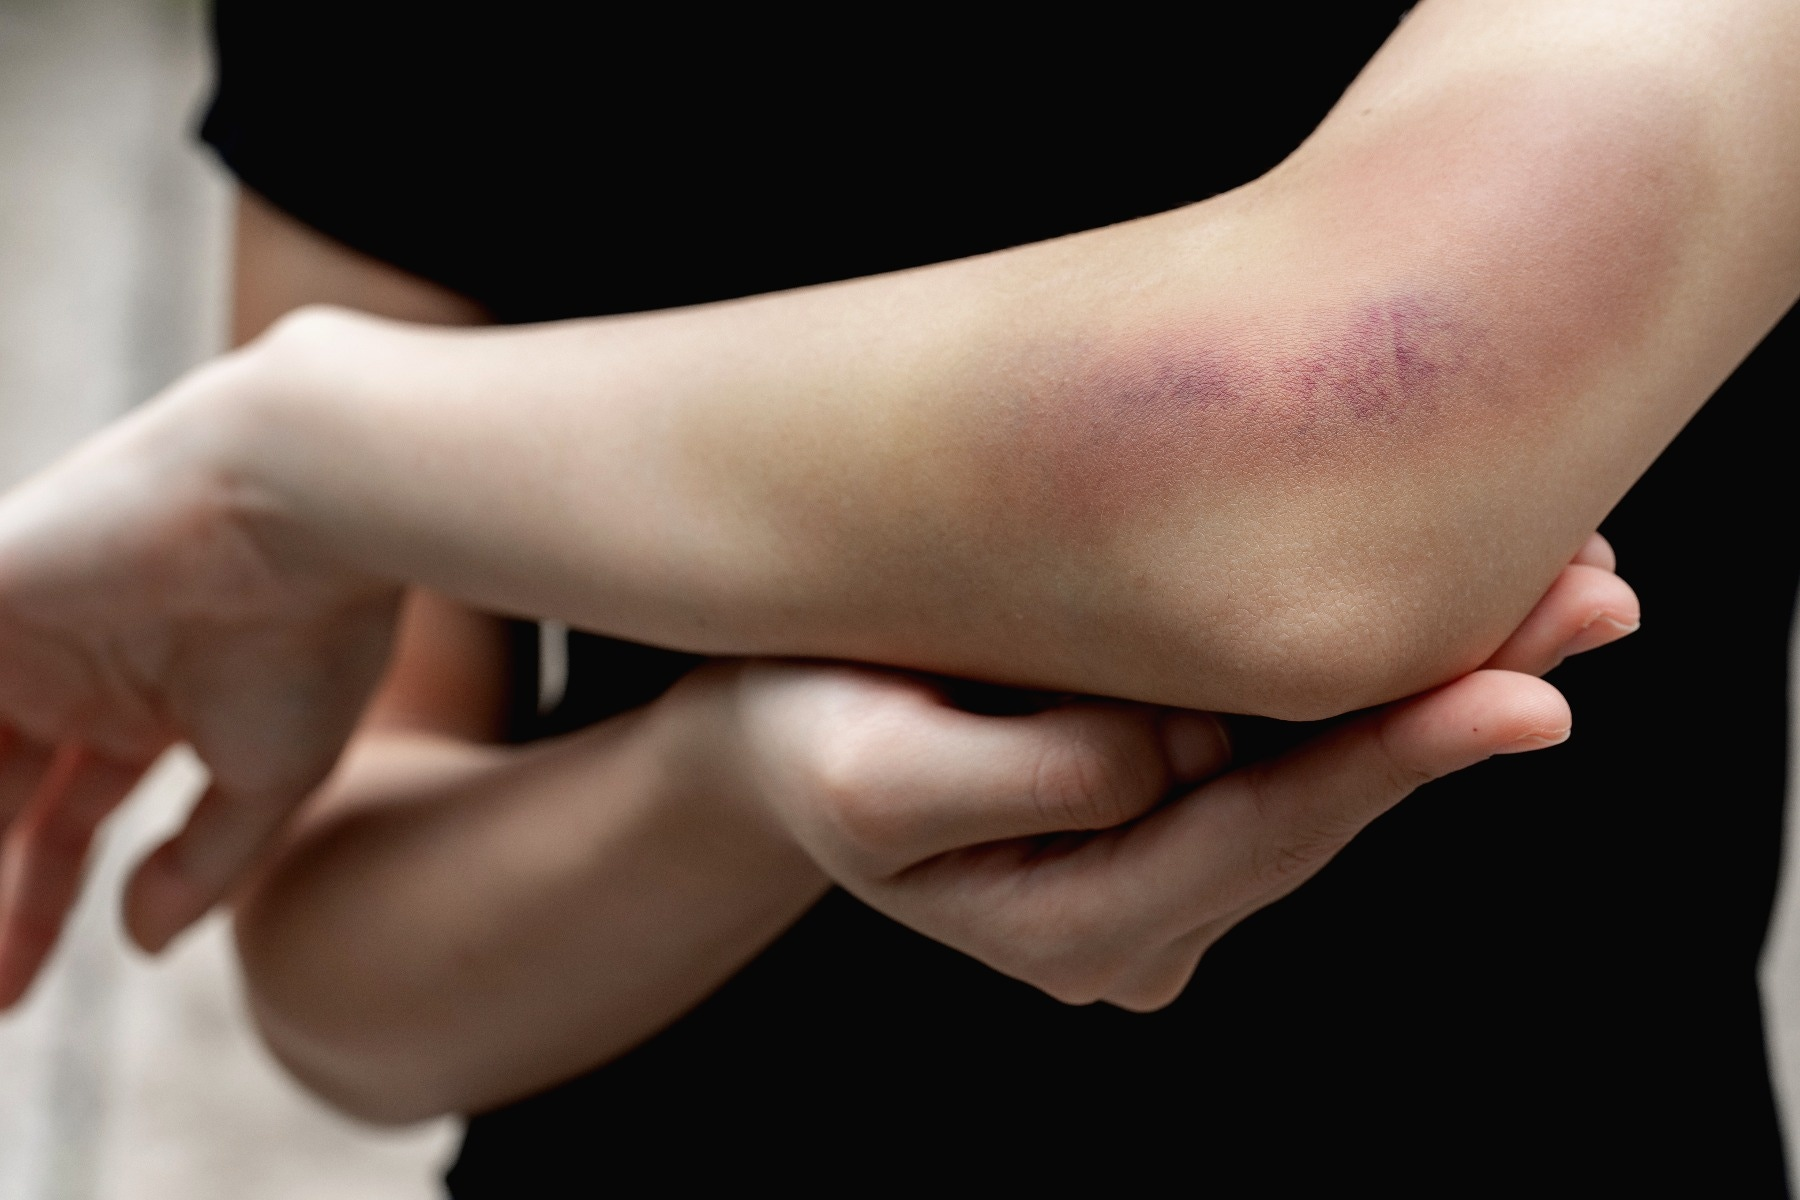 Person holding their arm, with large bruise seen above their elbow